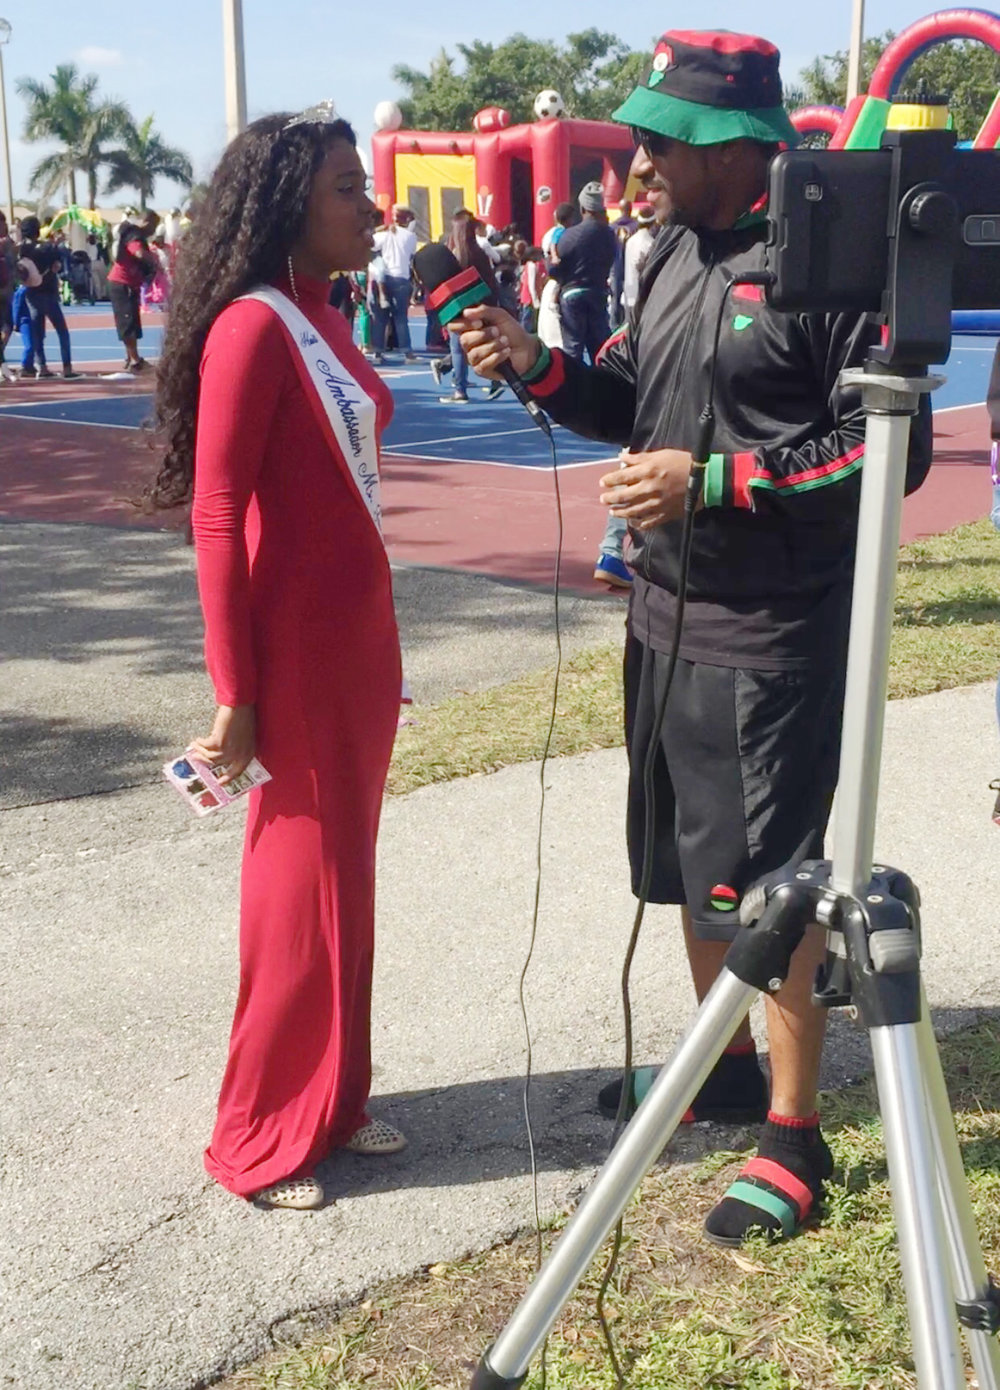 Ms.Jacmel being interviewed by the press